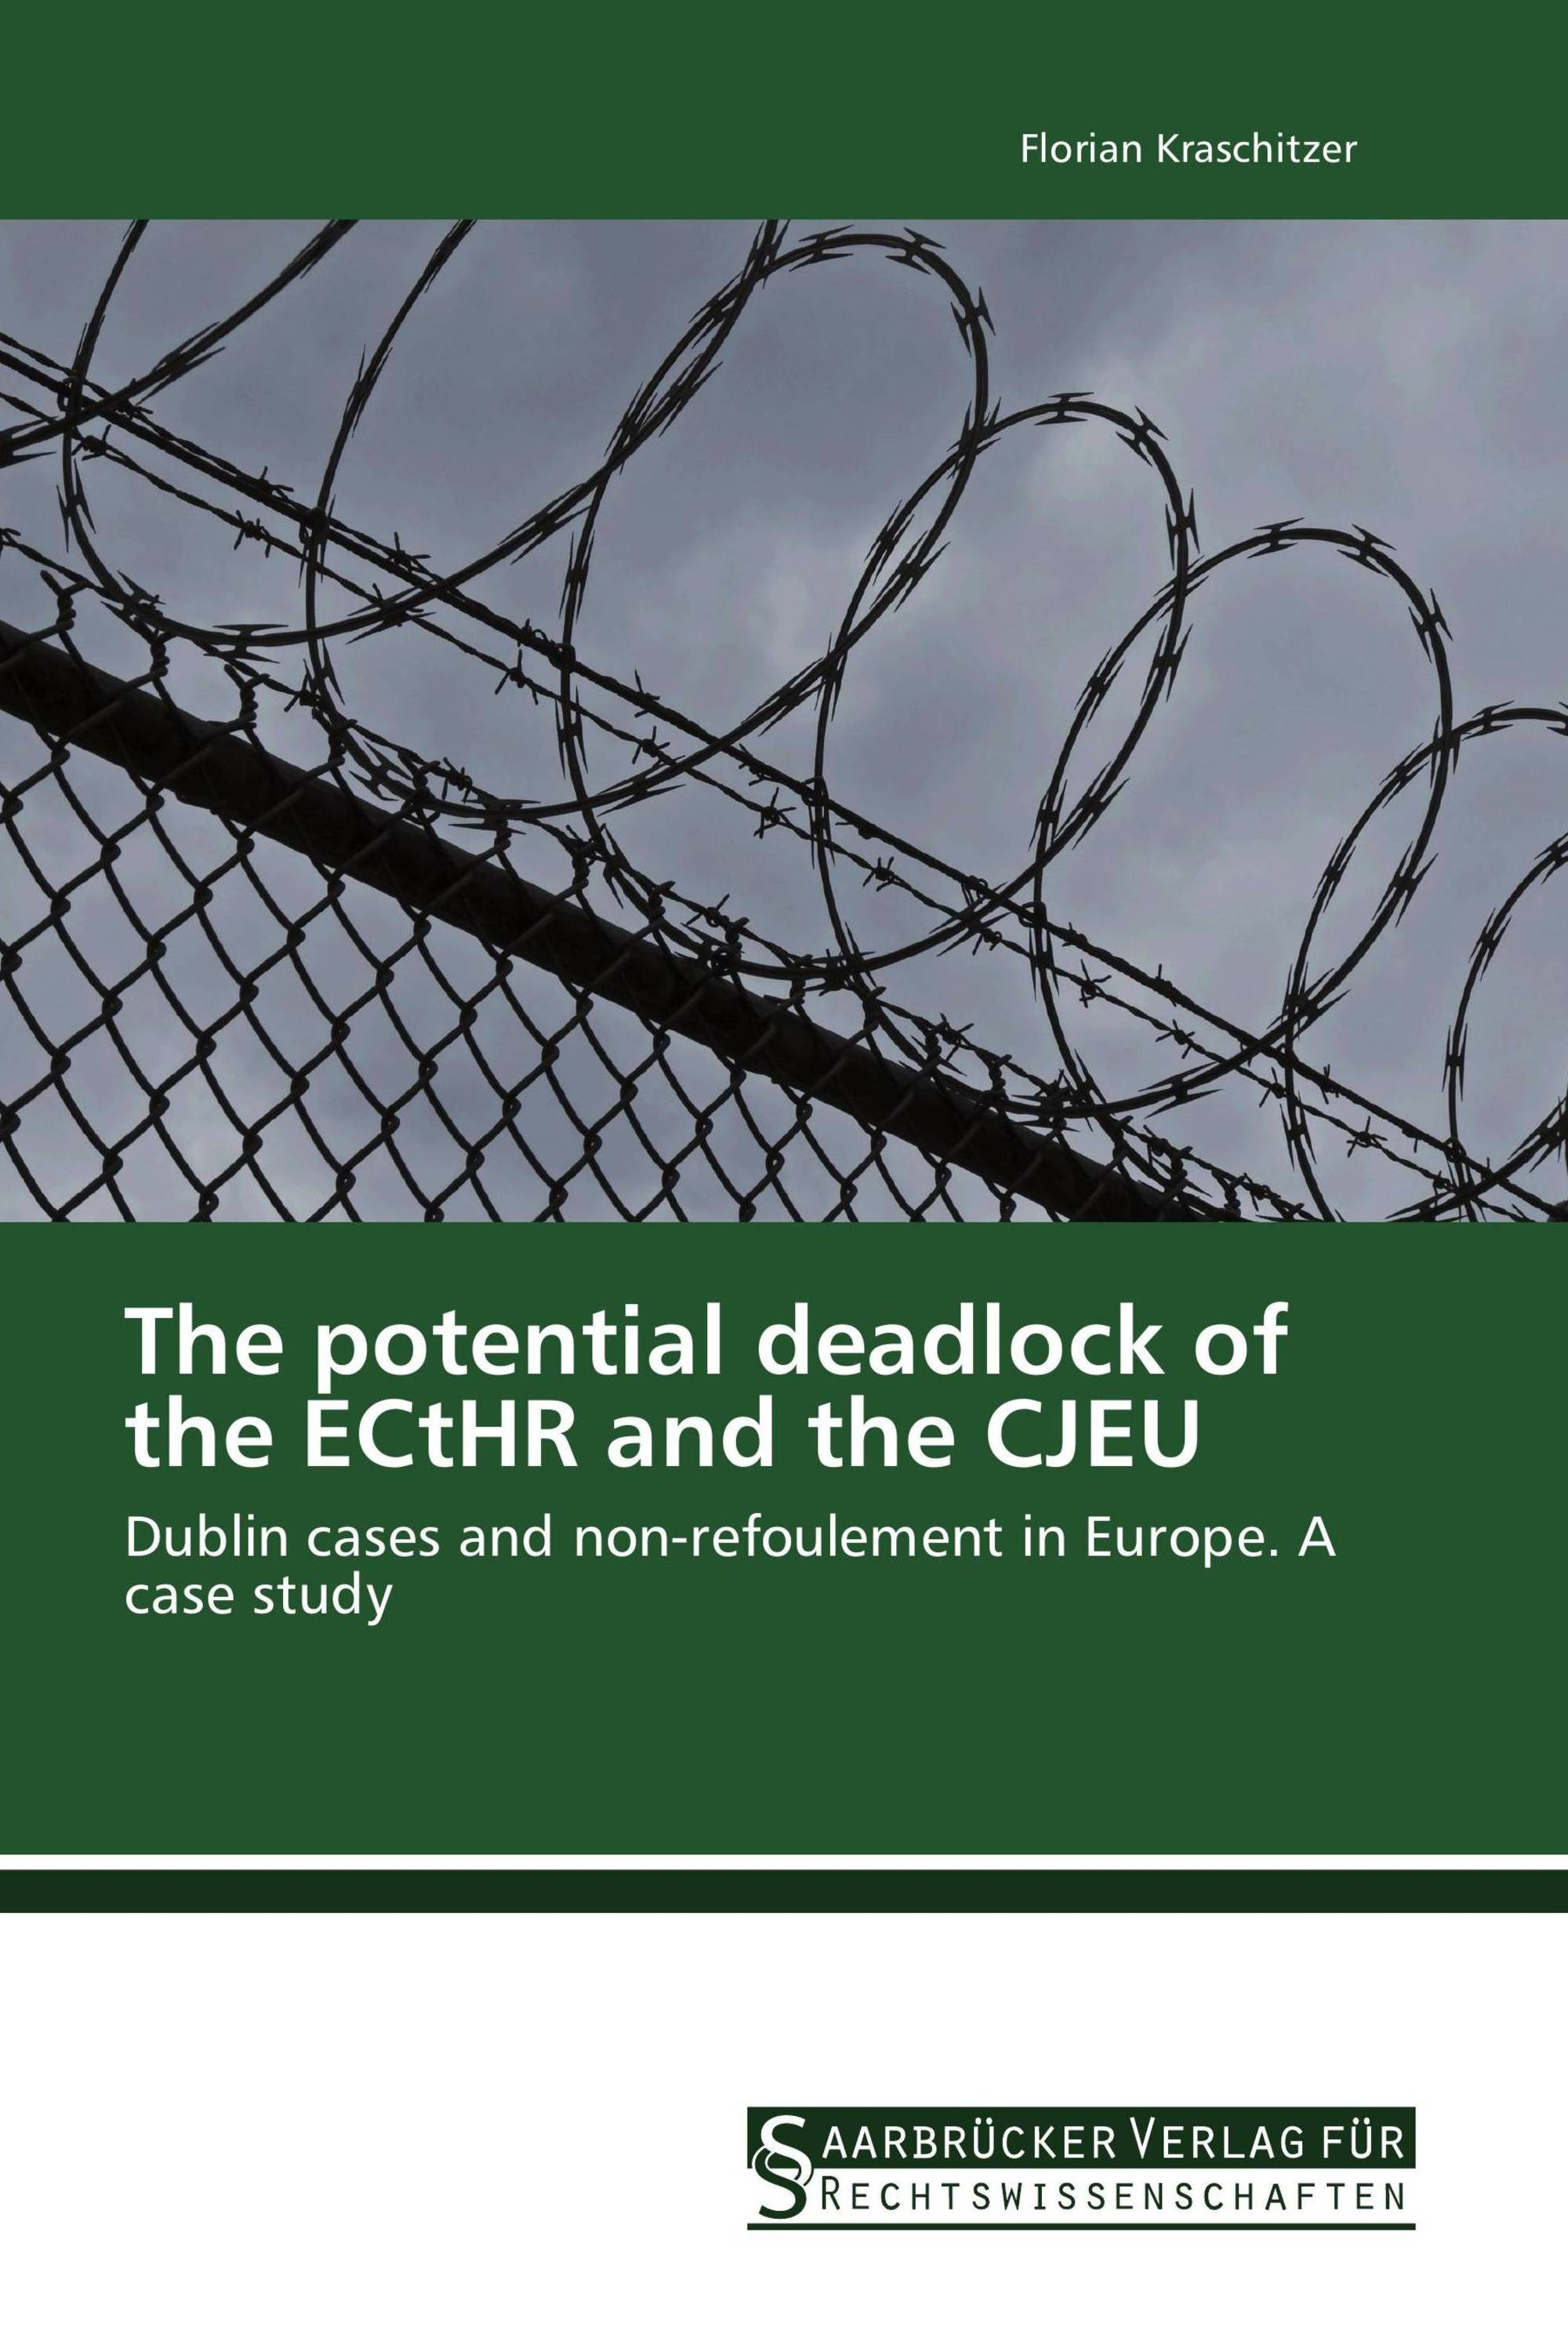 The potential deadlock of the ECtHR and the CJEU